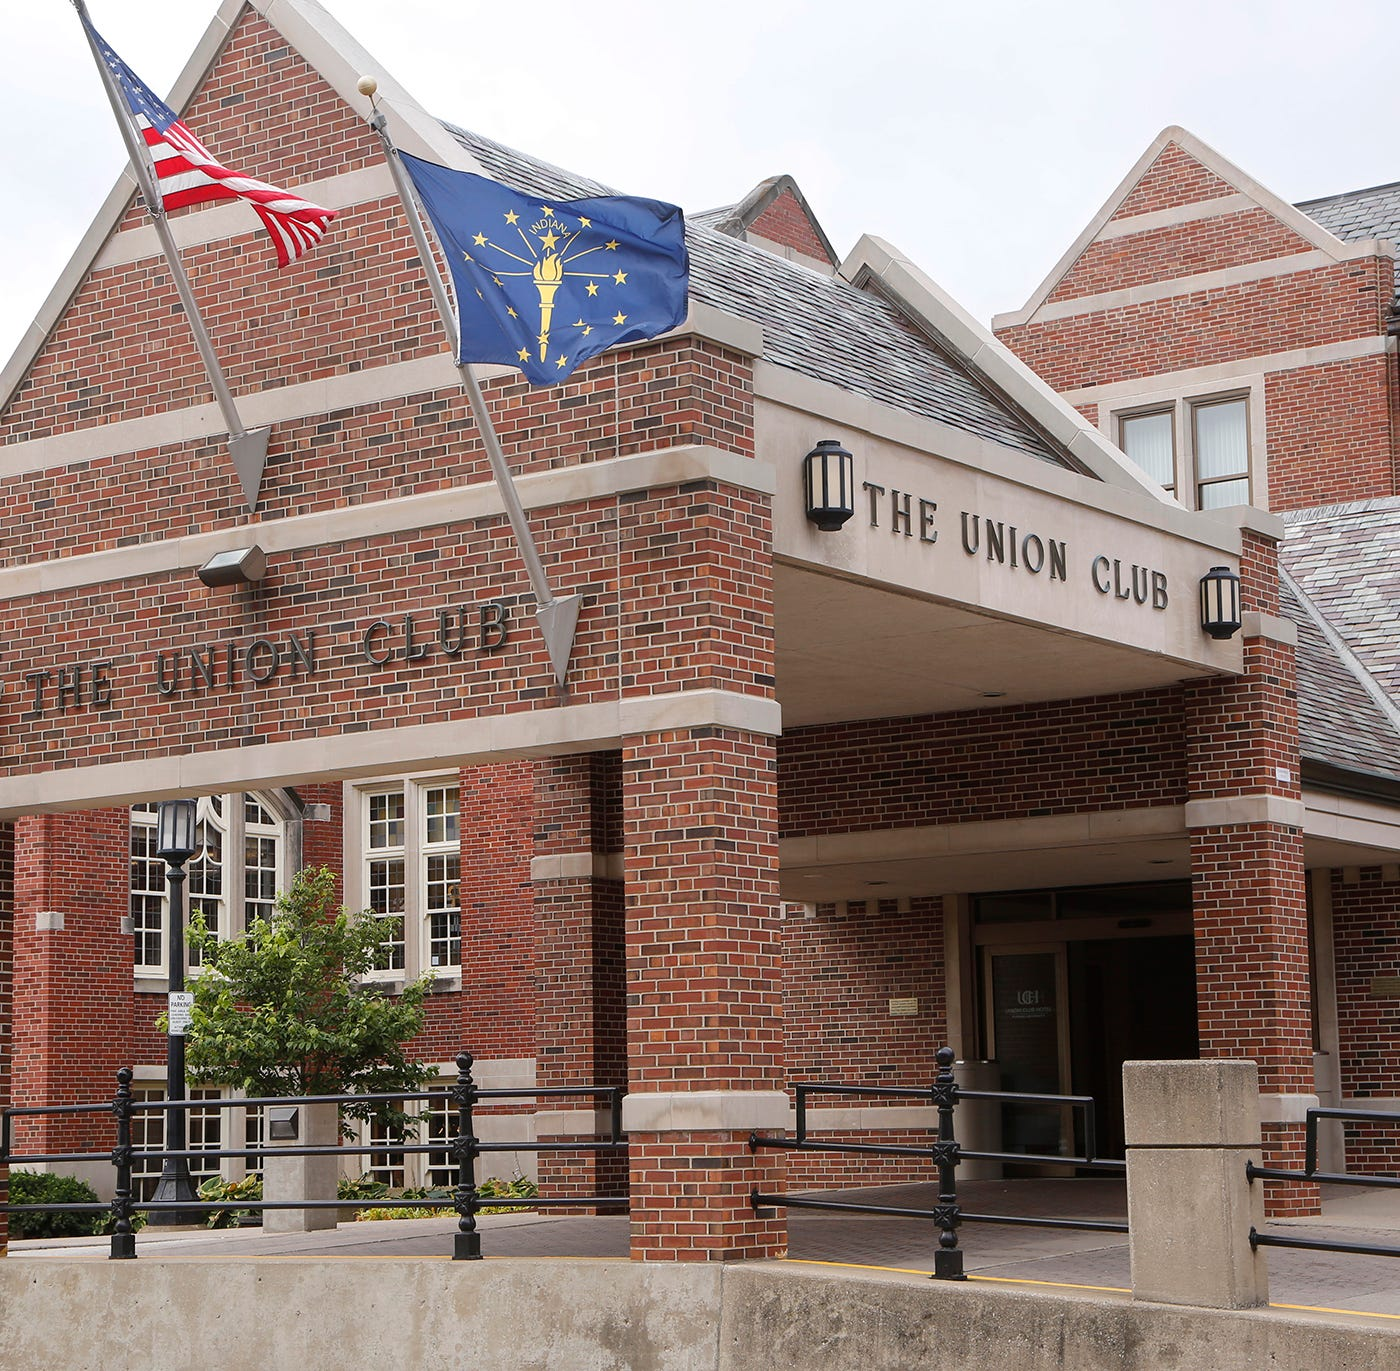 Purdue: $30M remodeling coming for Union Club Hotel thanks to former trustee's gift